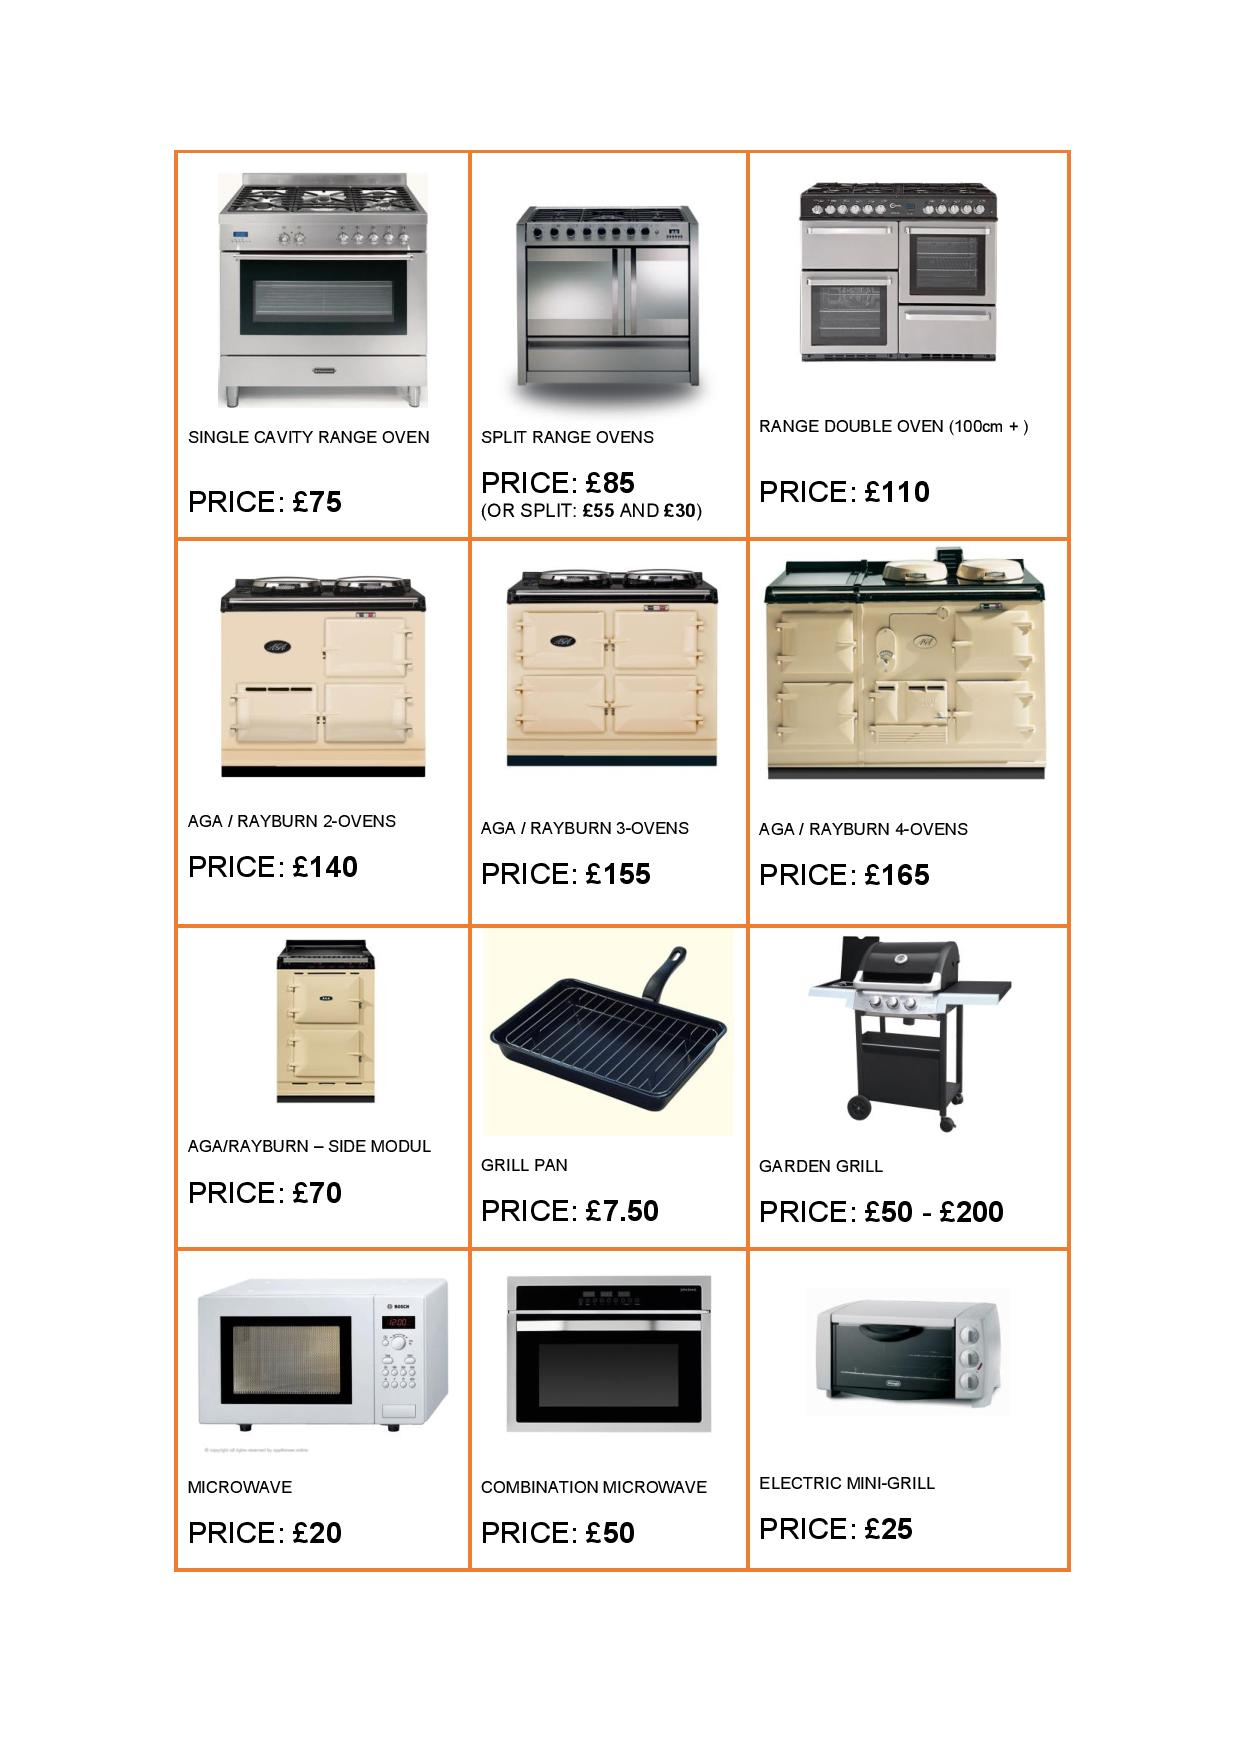 OVEN CLEANING PRICES PAGE 2